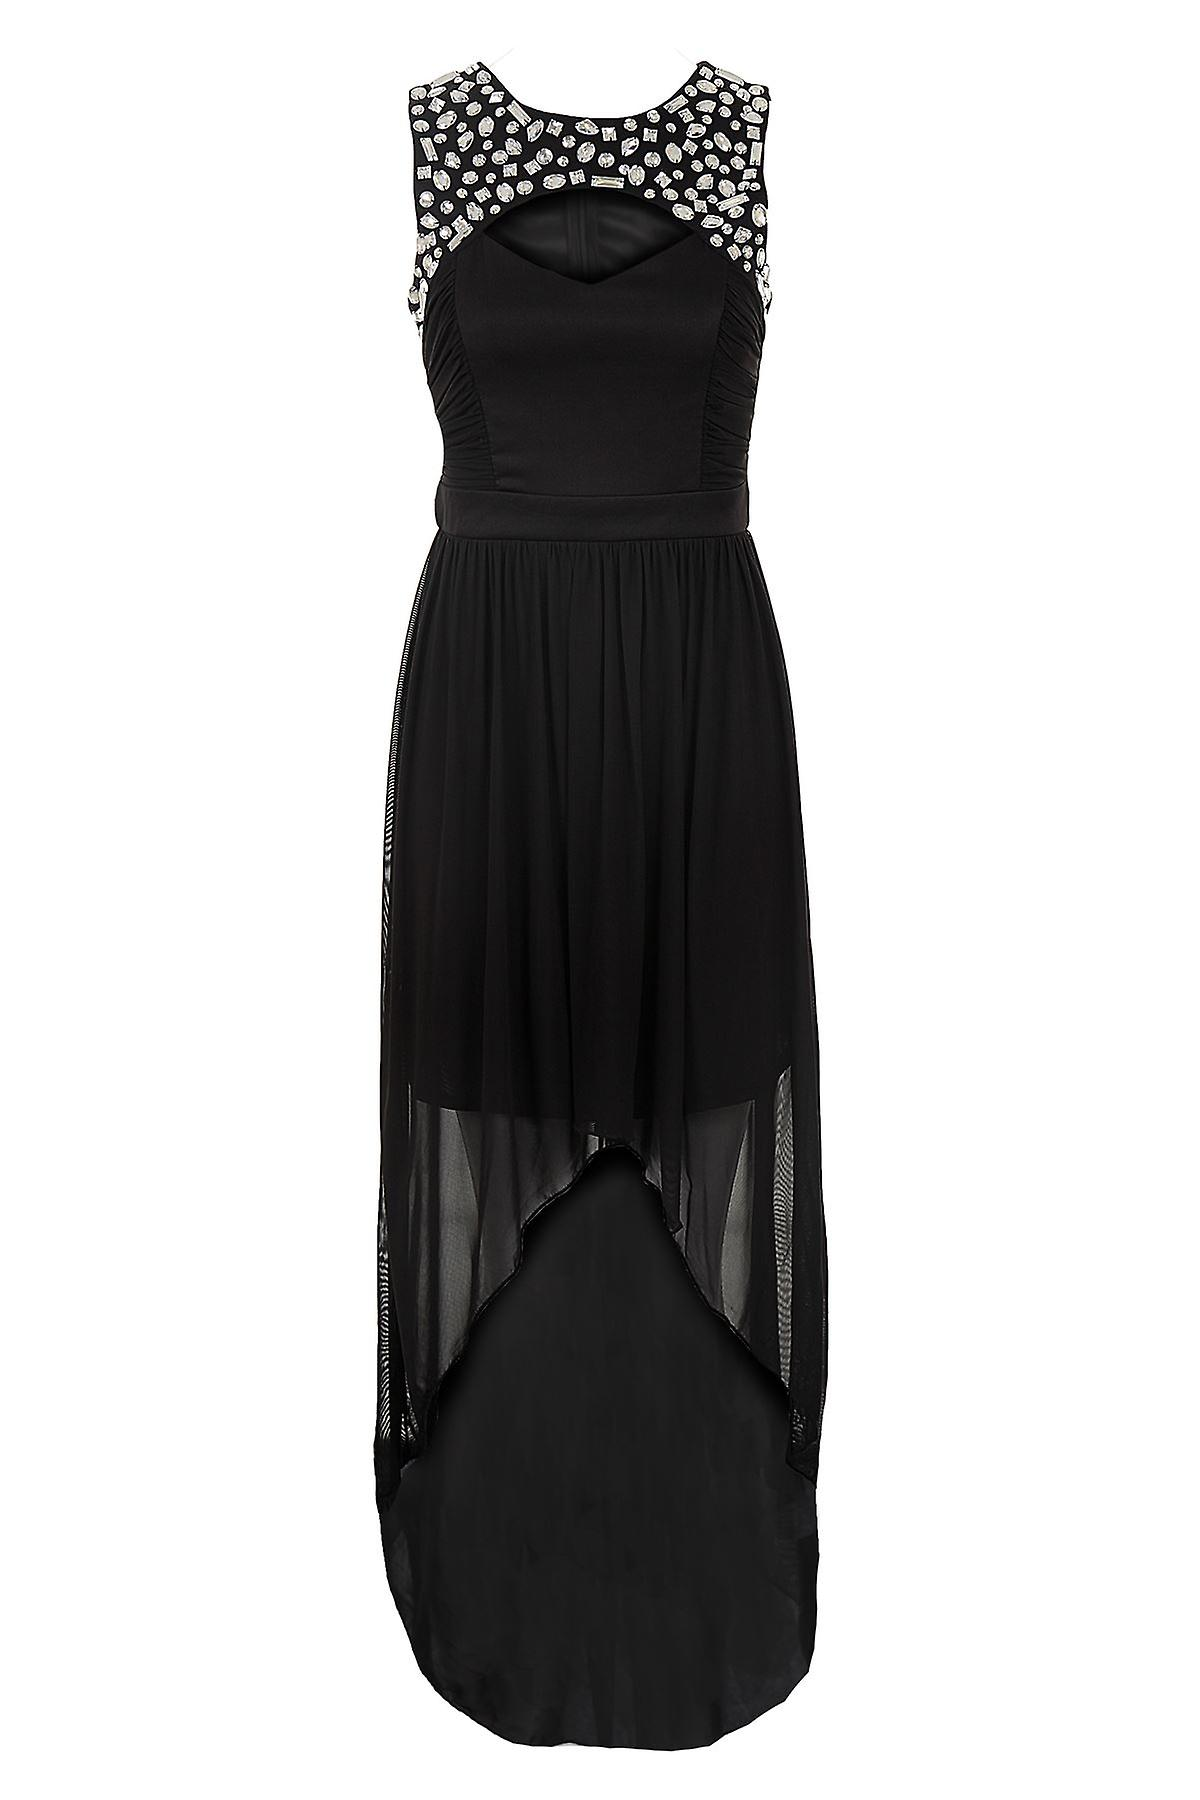 Ladies Diamante Cut Out Front Gathered High Low Long Maxi Fishtail Womens Dress